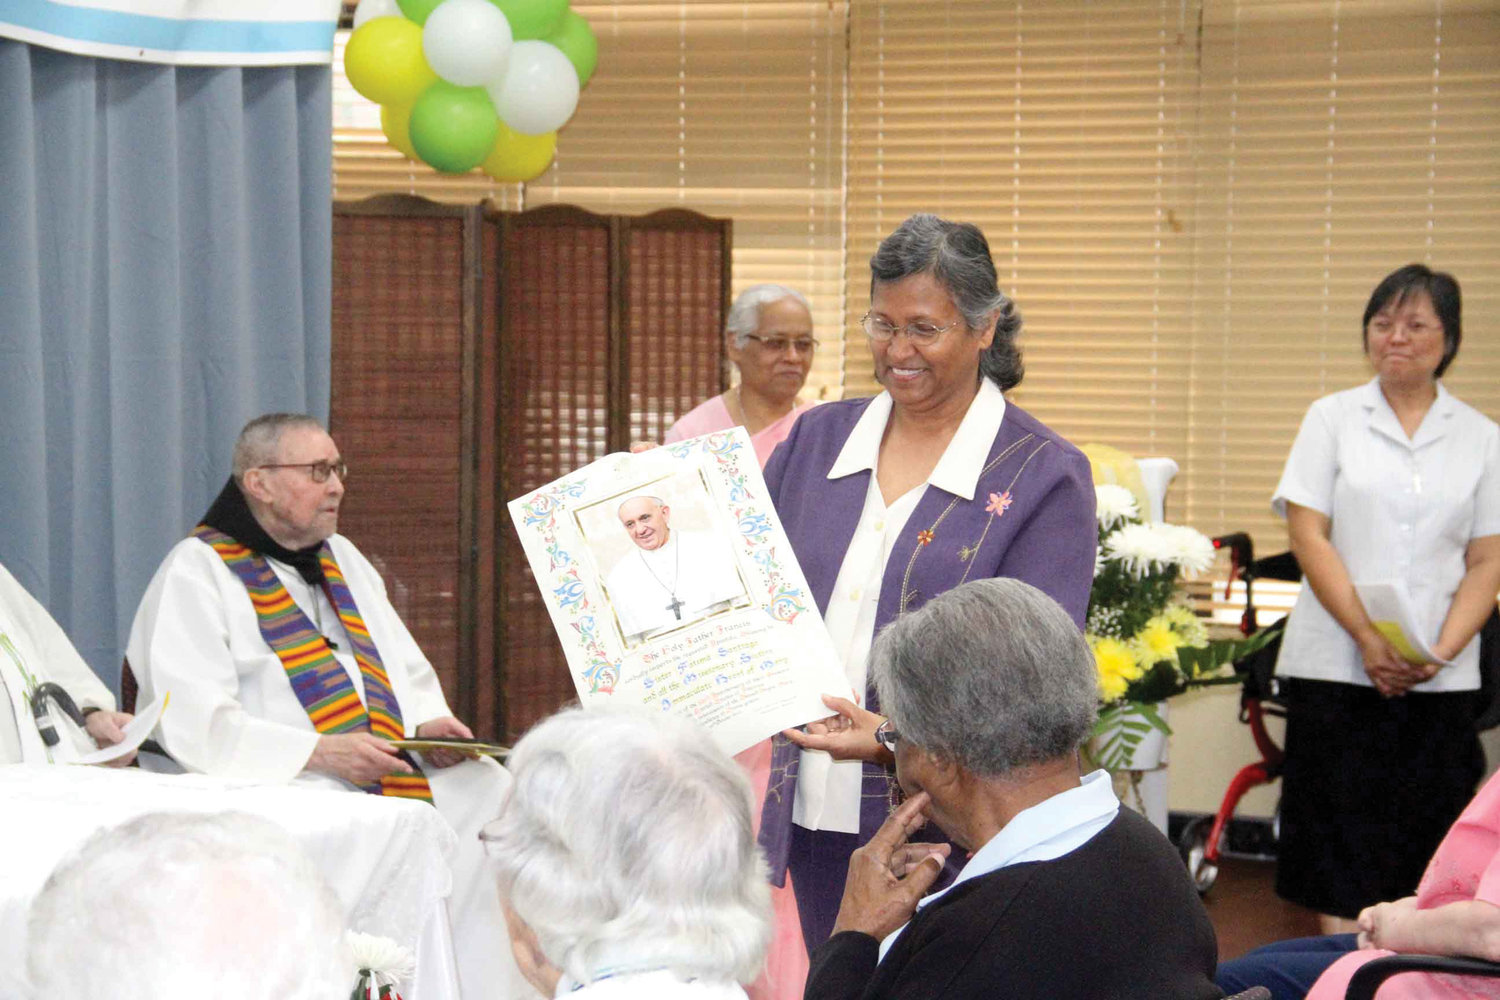 Sister Fatima Santiago, I.C.M., U.S. mission superior, holds a blessing from Pope Francis as the Missionary Sisters of the Immaculate Heart of Mary celebrated 100 years in the United States and New York at Kittay Senior Apartments in the Bronx Oct. 10.